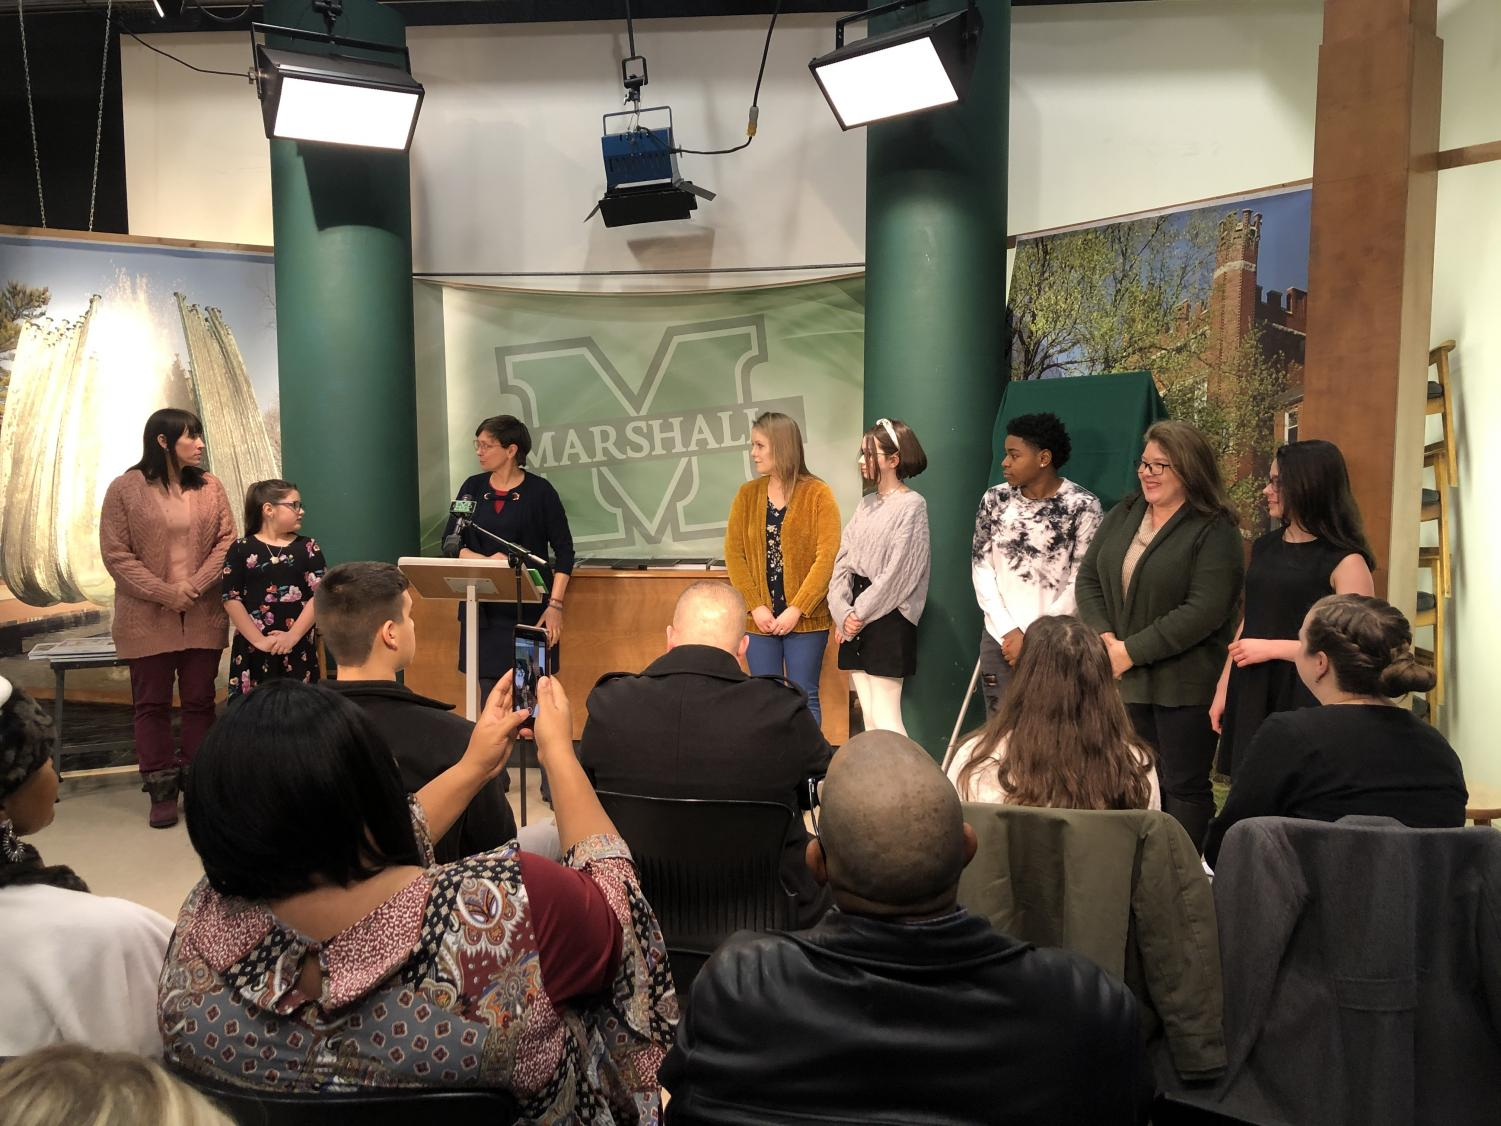 Winners of the Black History Month poster contest receive recognition at the event on Tuesday, Jan. 21.